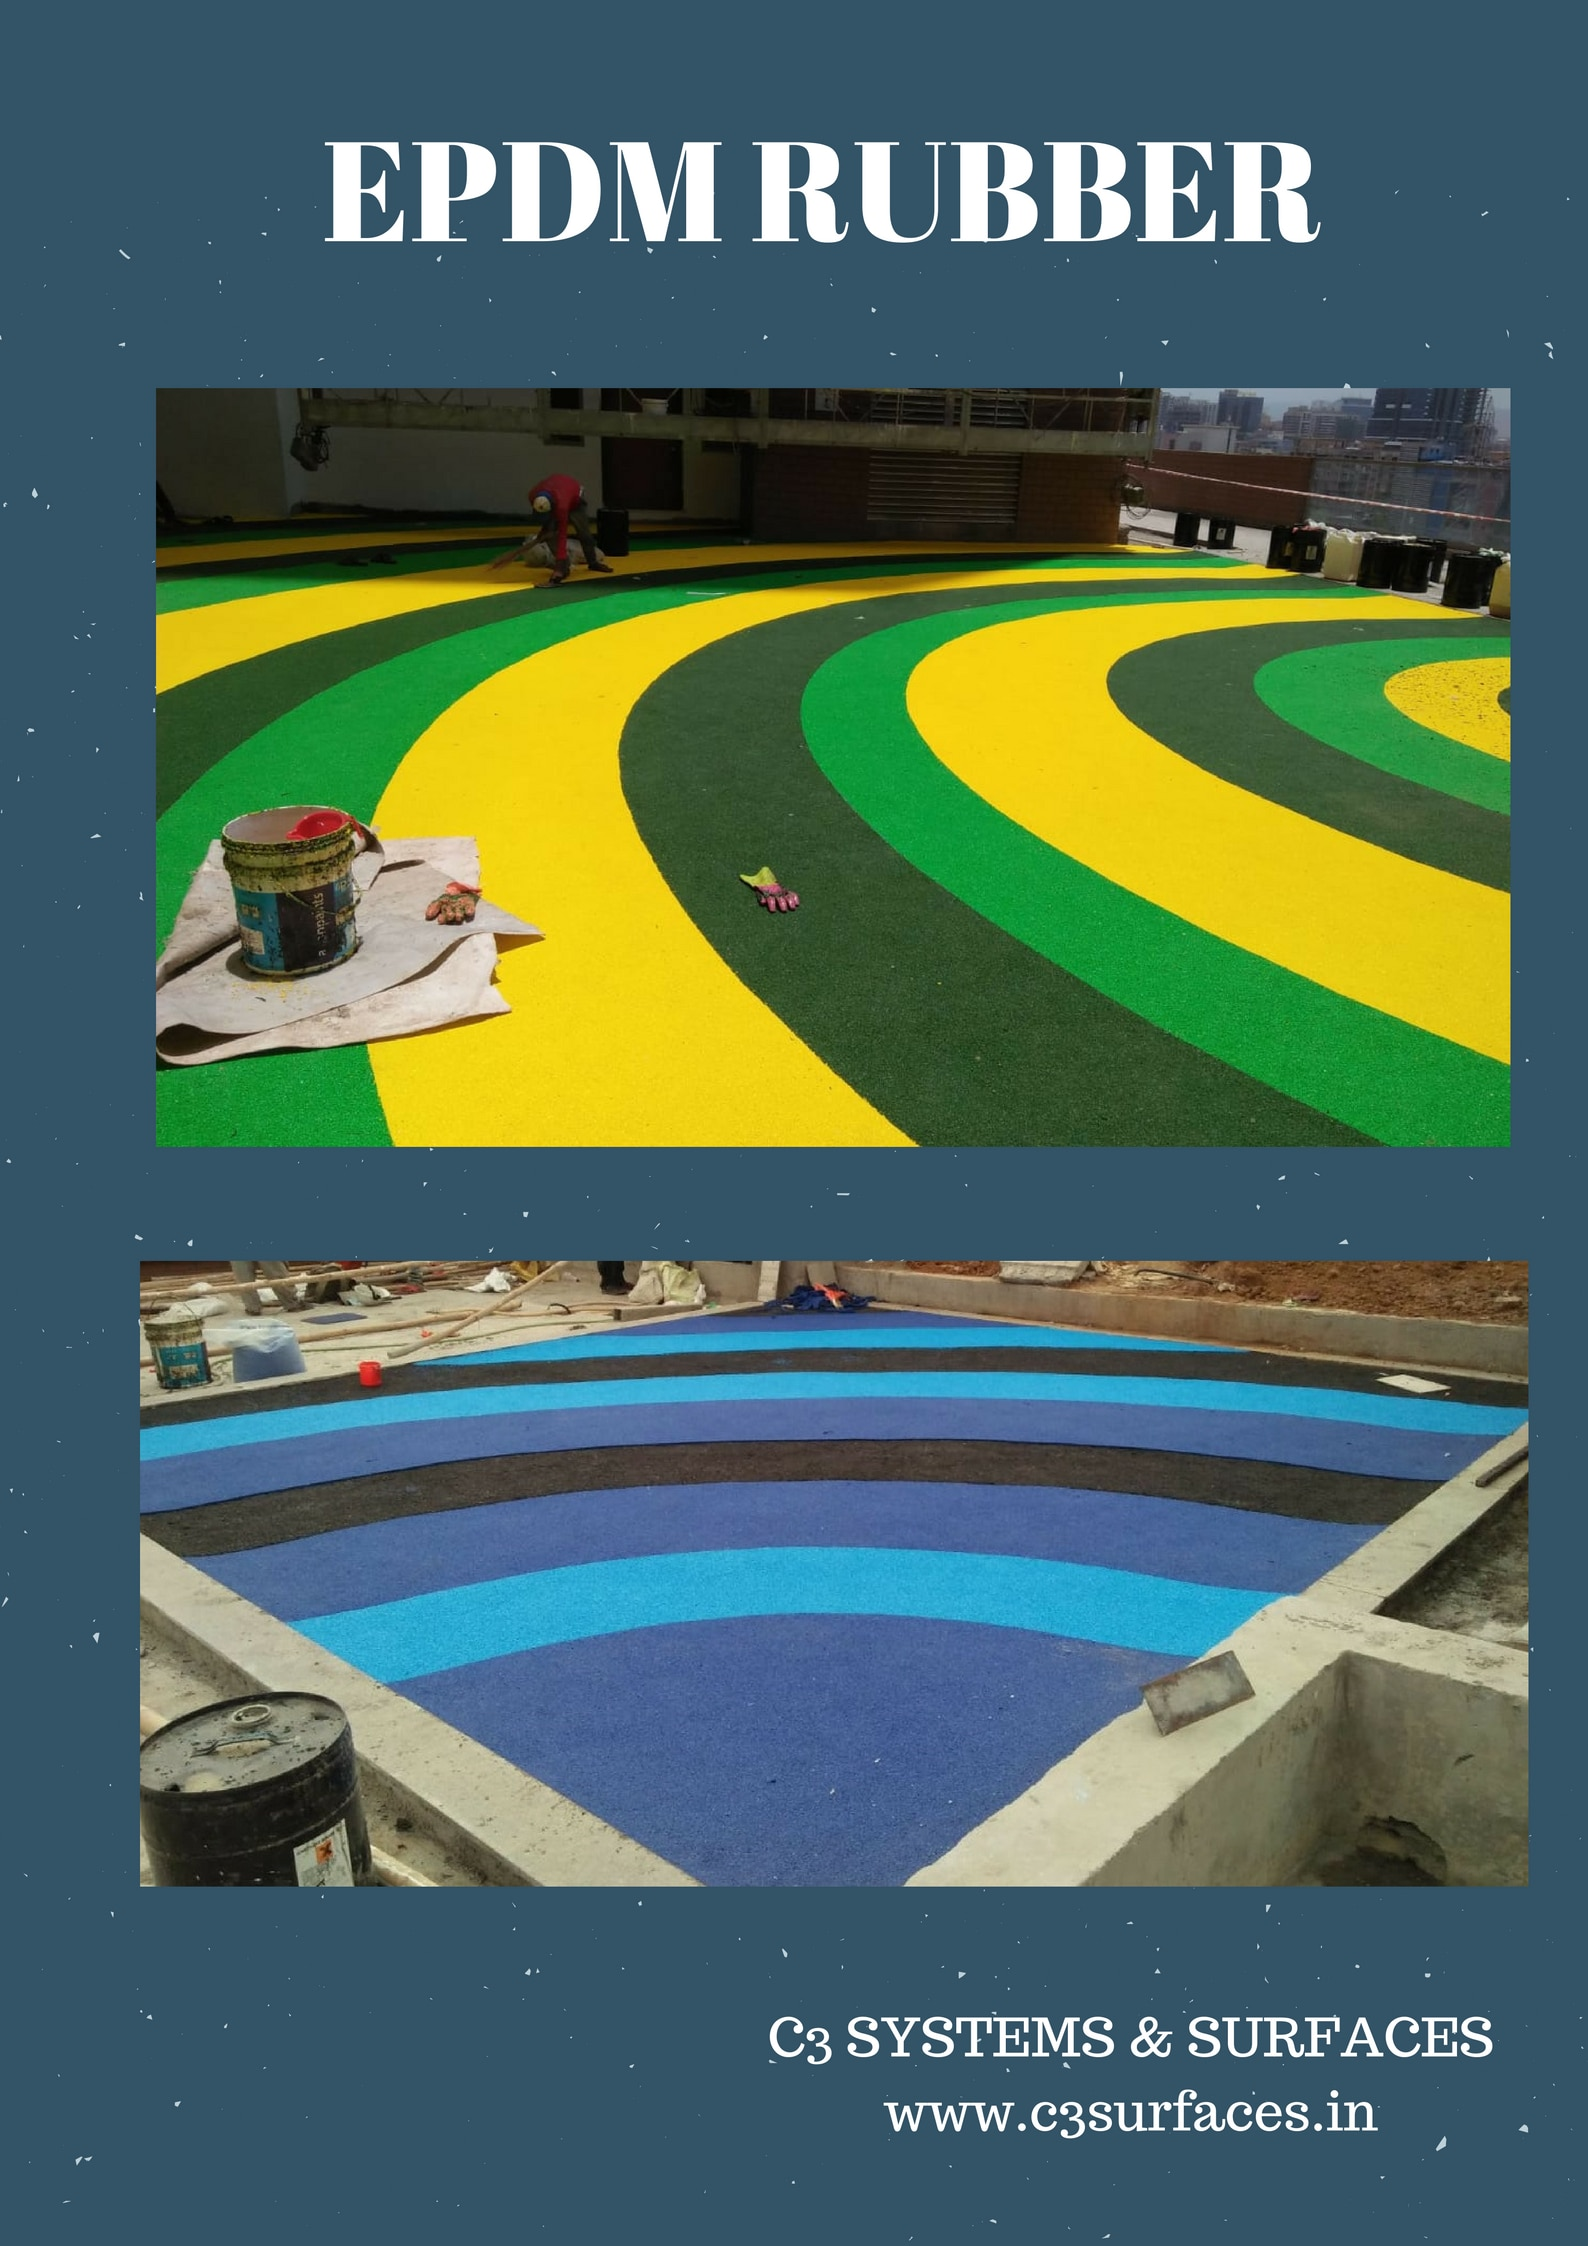 Work underway of play area surface at Adani Group's prestigious project in the prime suburbs of Mumbai. The surface is EPDM Rubber. This surface ensures practically no injury and safe play for the young ones.